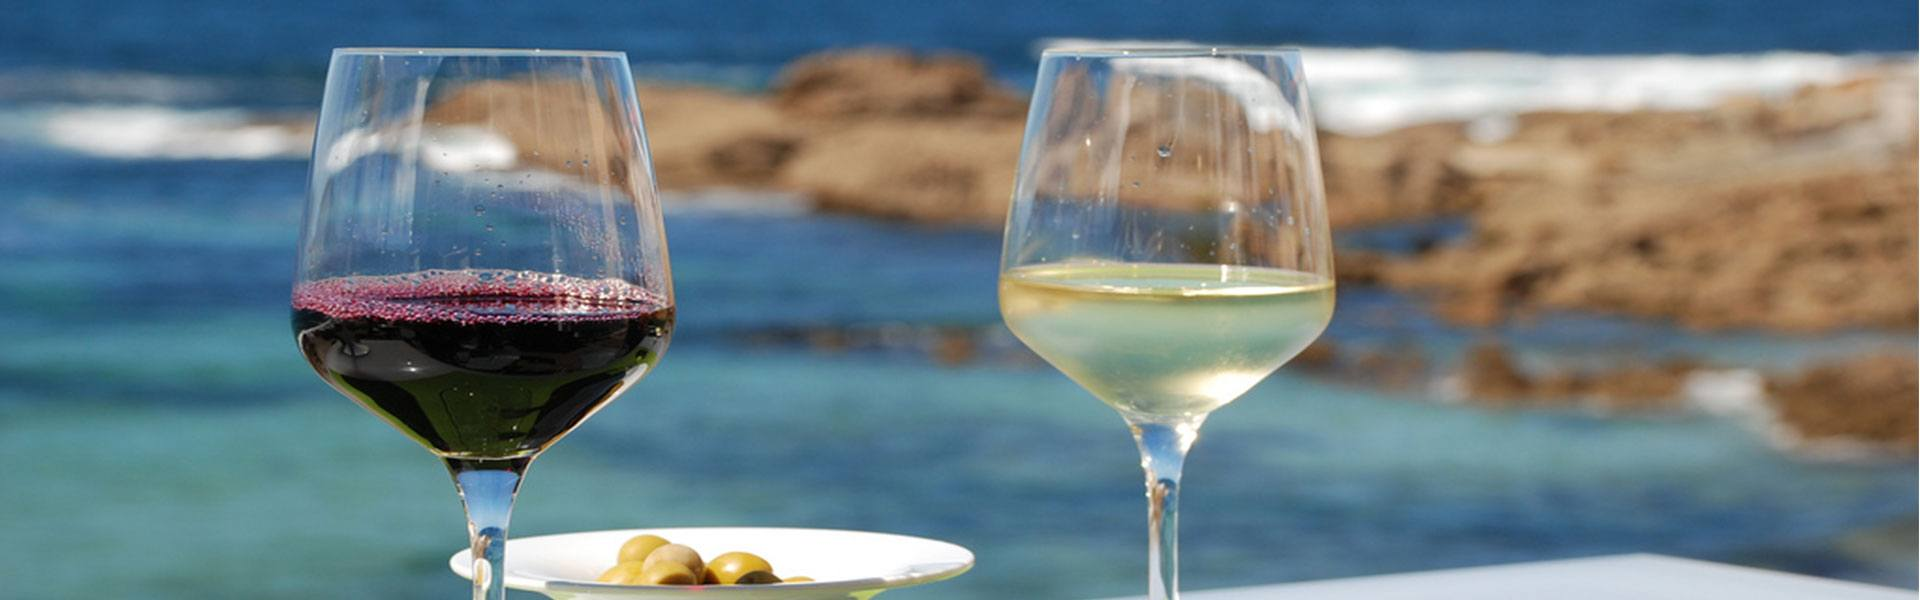 https://www.cruisegalicia.com/wp-content/uploads/2017/02/Enjoy-the-best-foods-and-wines.jpg